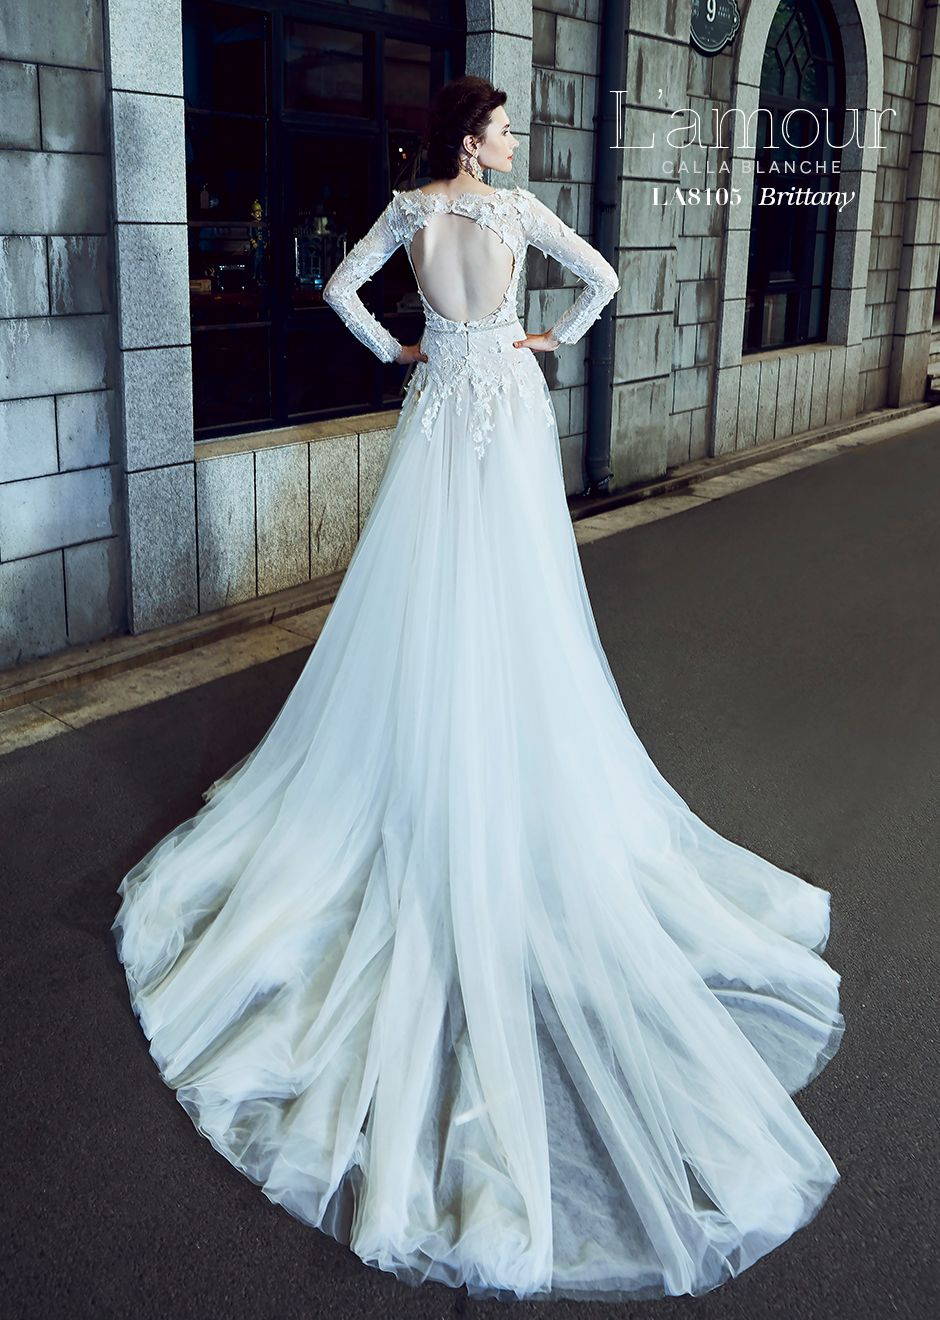 Luamour spring collection wedding dresses for todayus bride